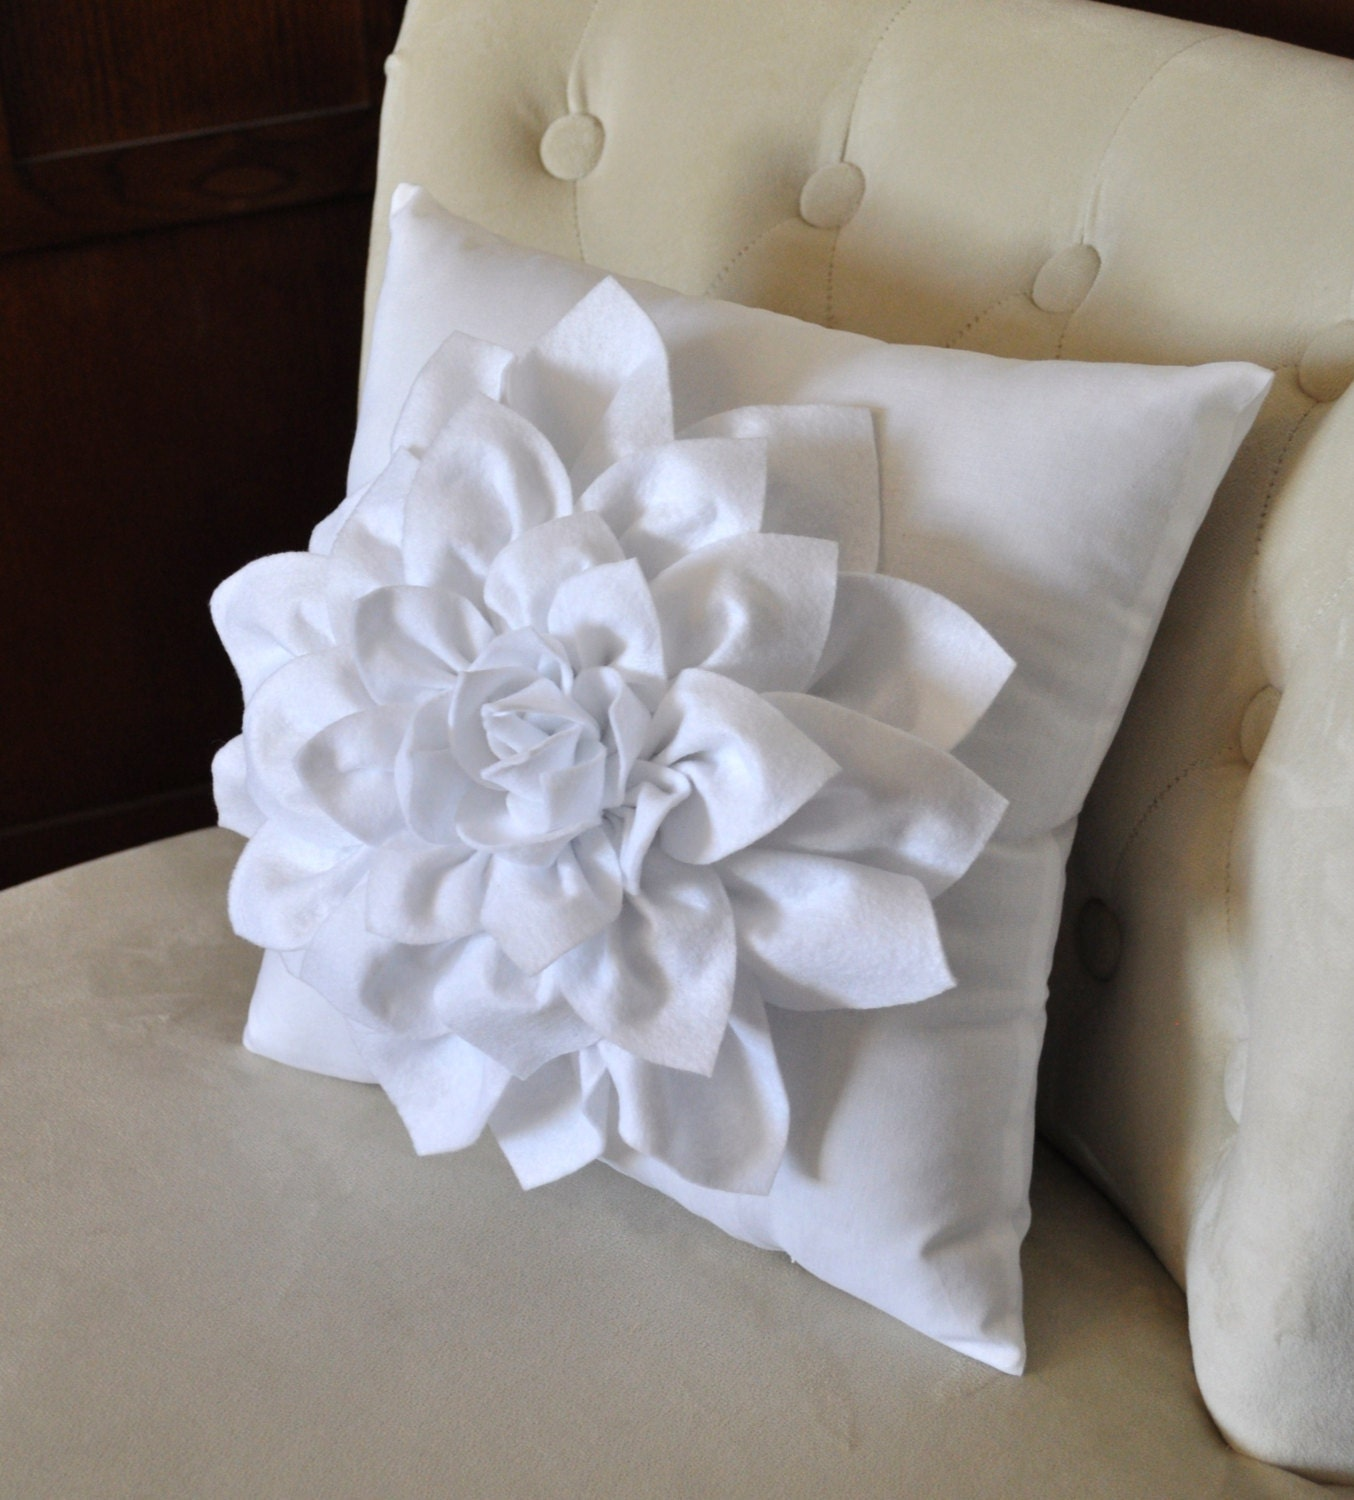 Decorative Pillows Flowers : Dahlia Felt Flower on White Pillow Mum Flower